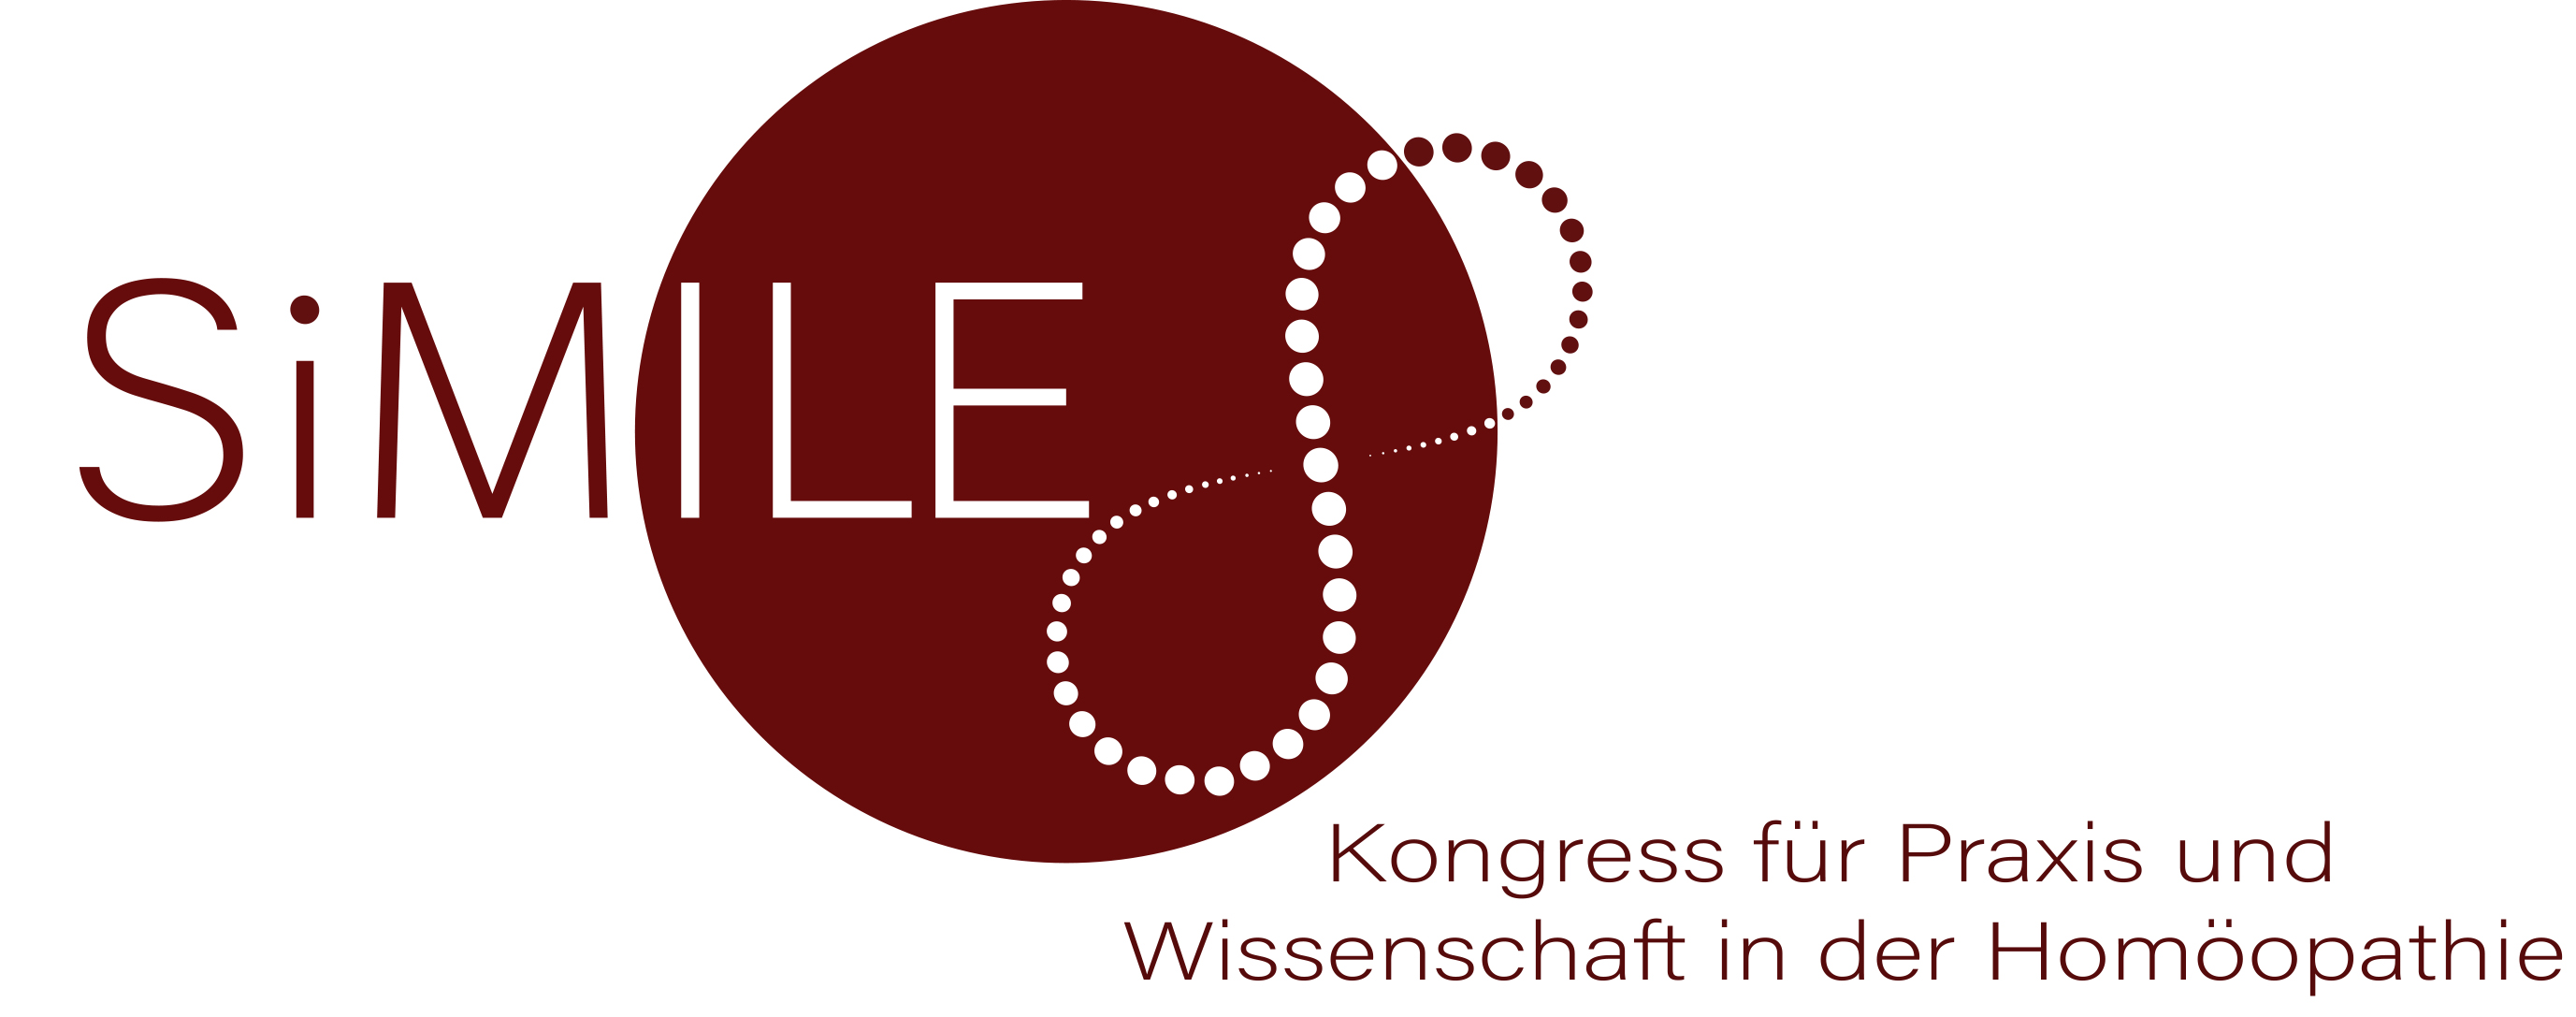 SiMILE Kongress